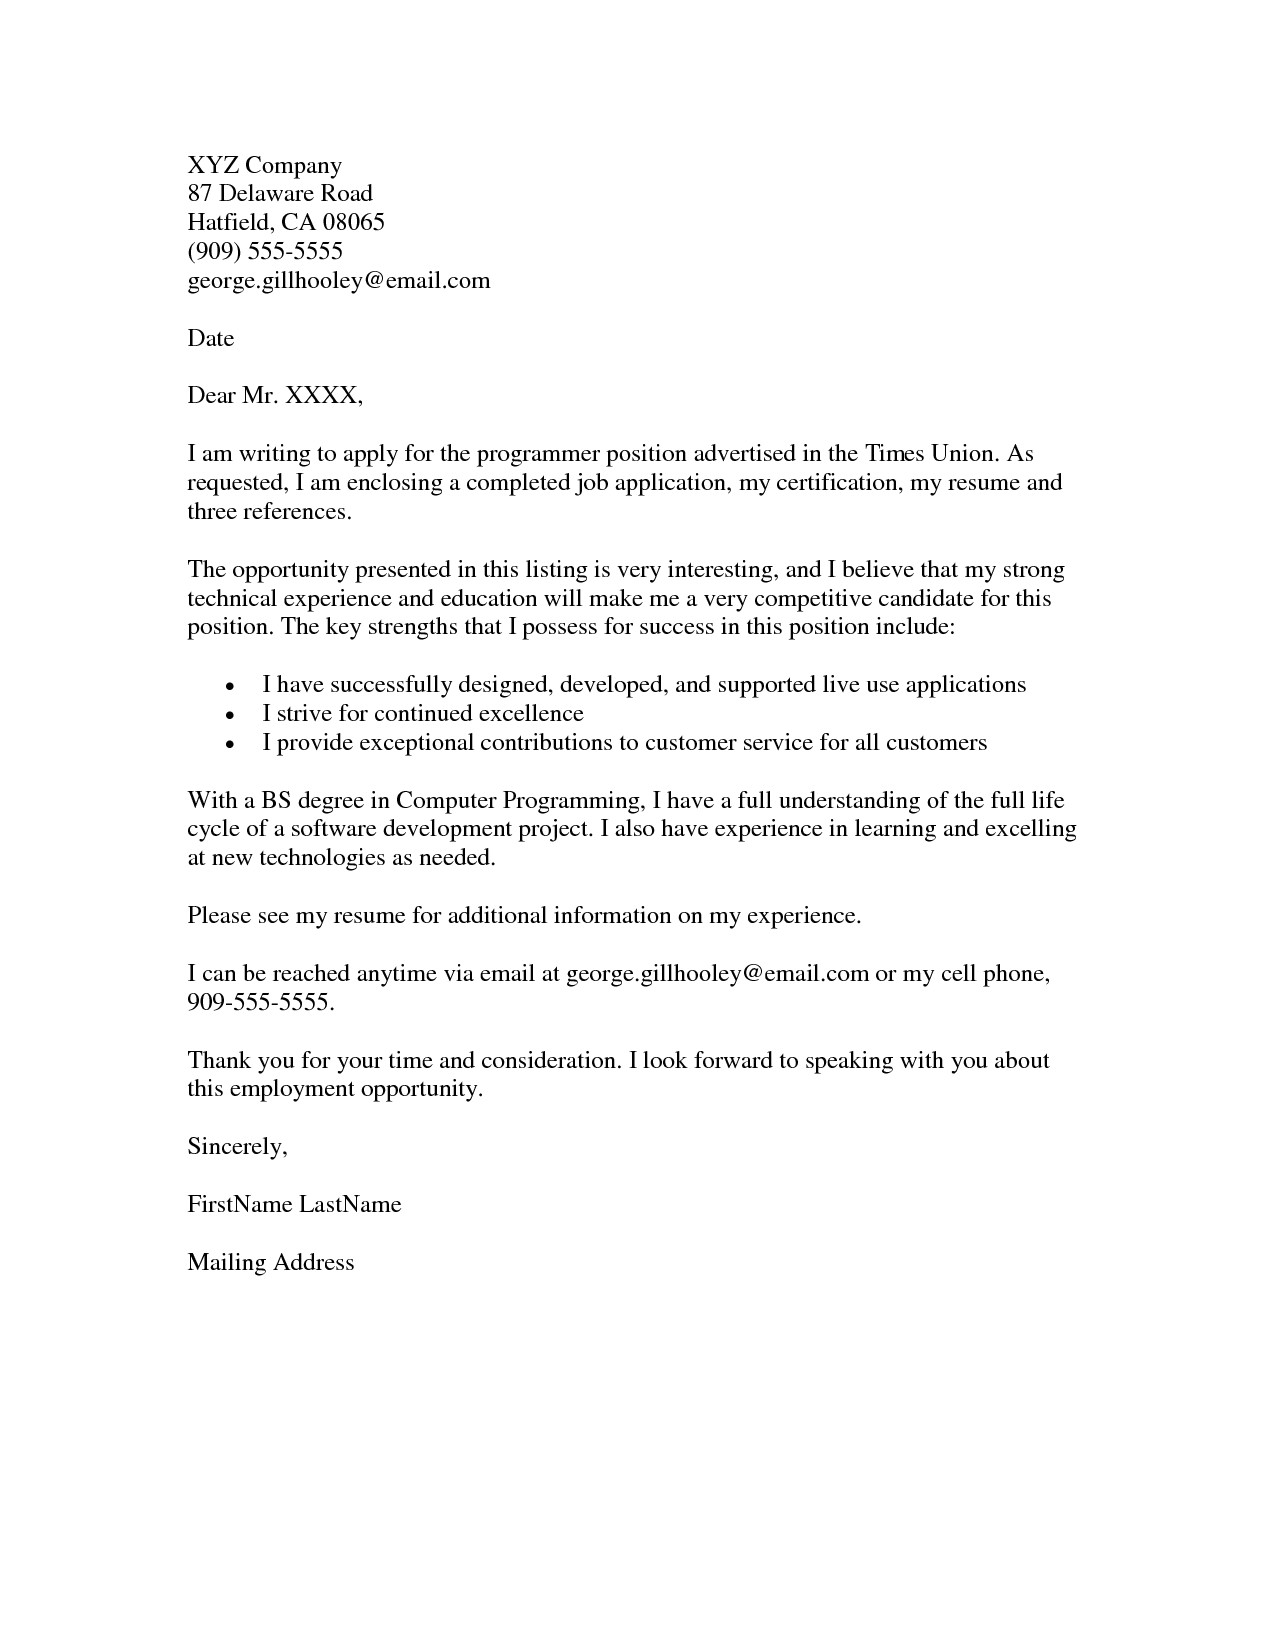 Applying for A Job Online Cover Letter Job Application Cover Letter Example Resumes Job